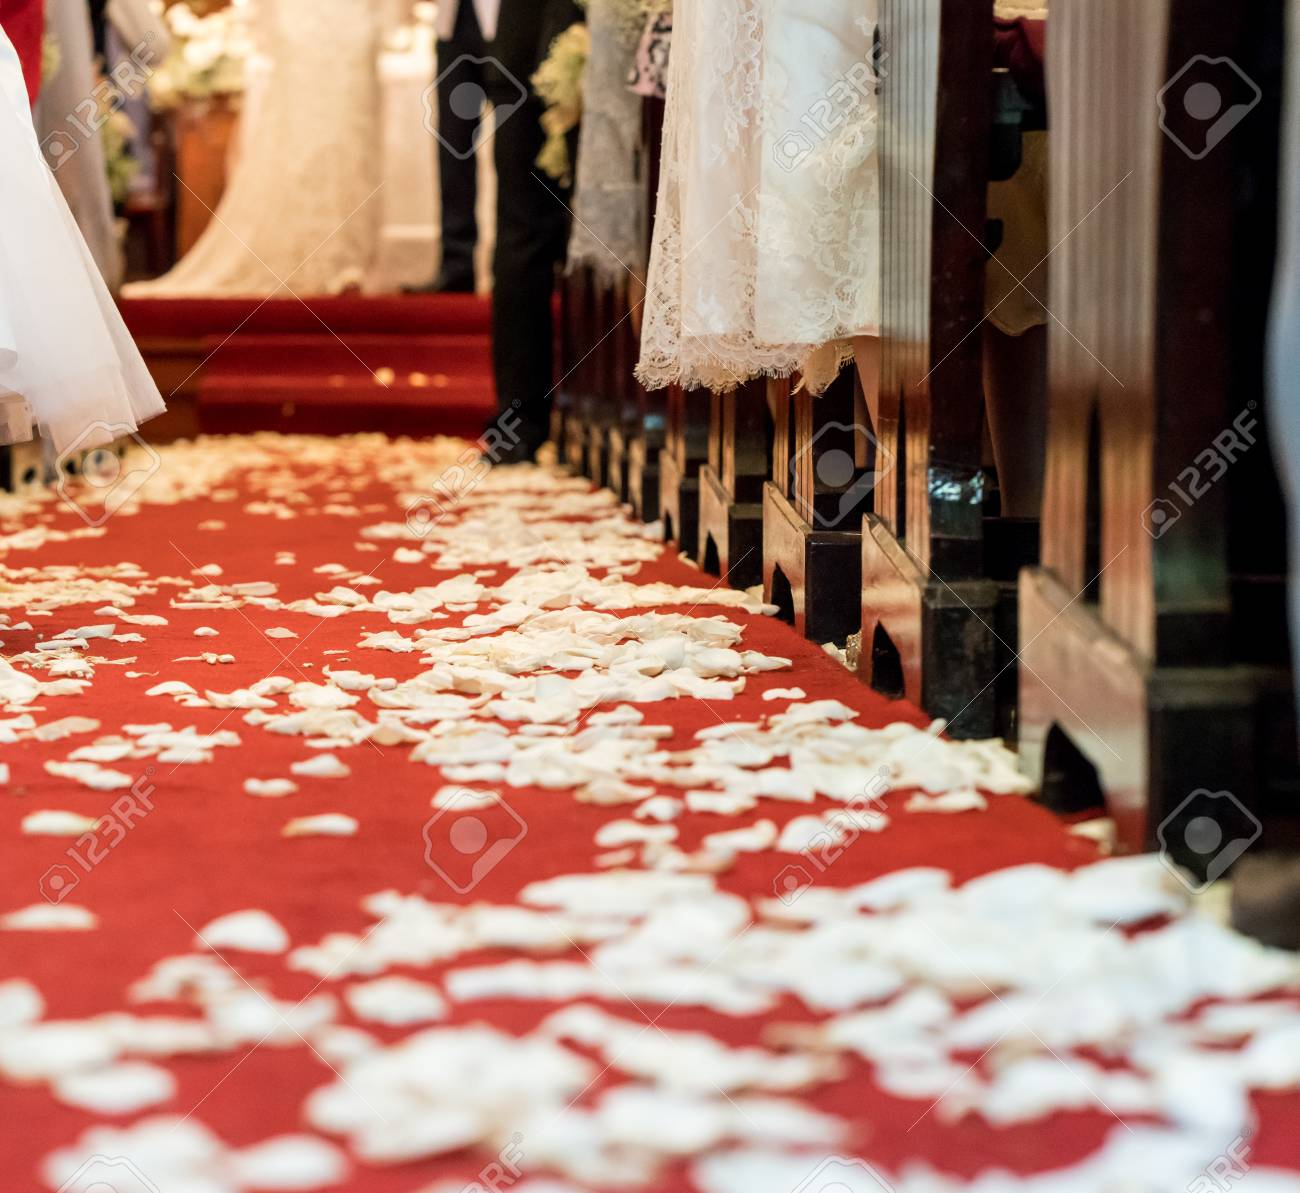 Closed Up White Flower Petals On Red Carpet Floor In Church At